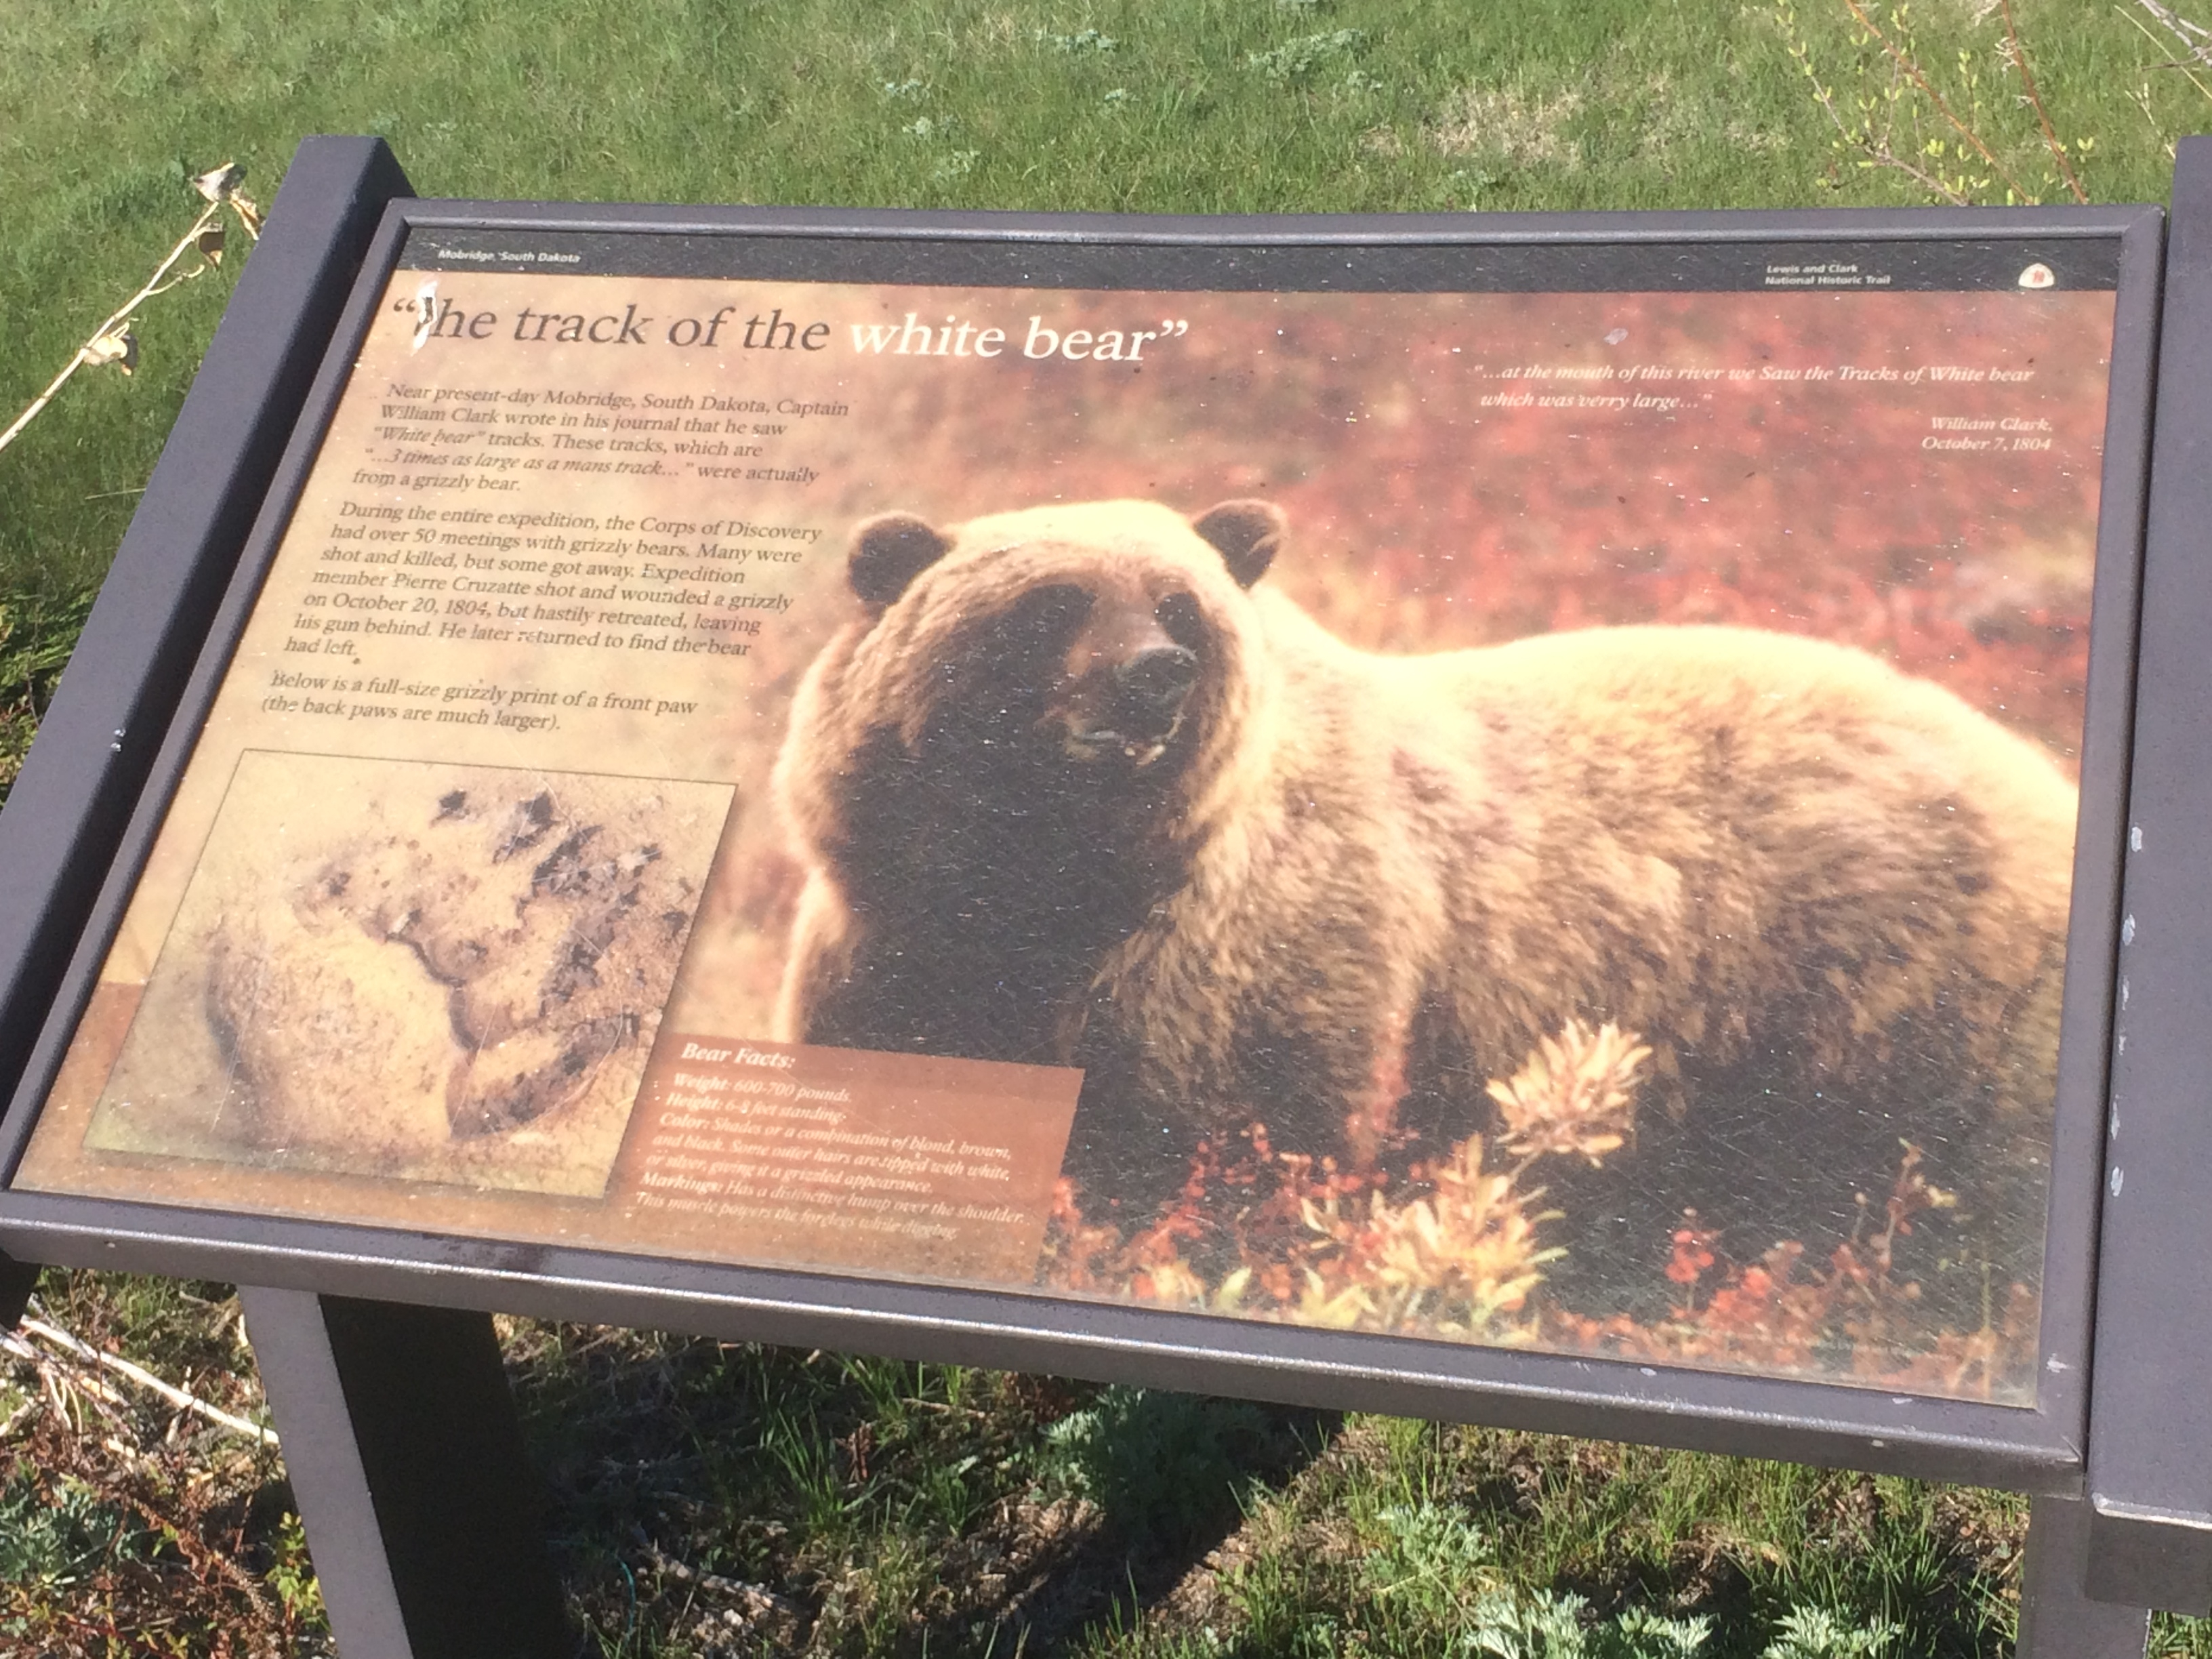 """the track of the white bear"" Marker"